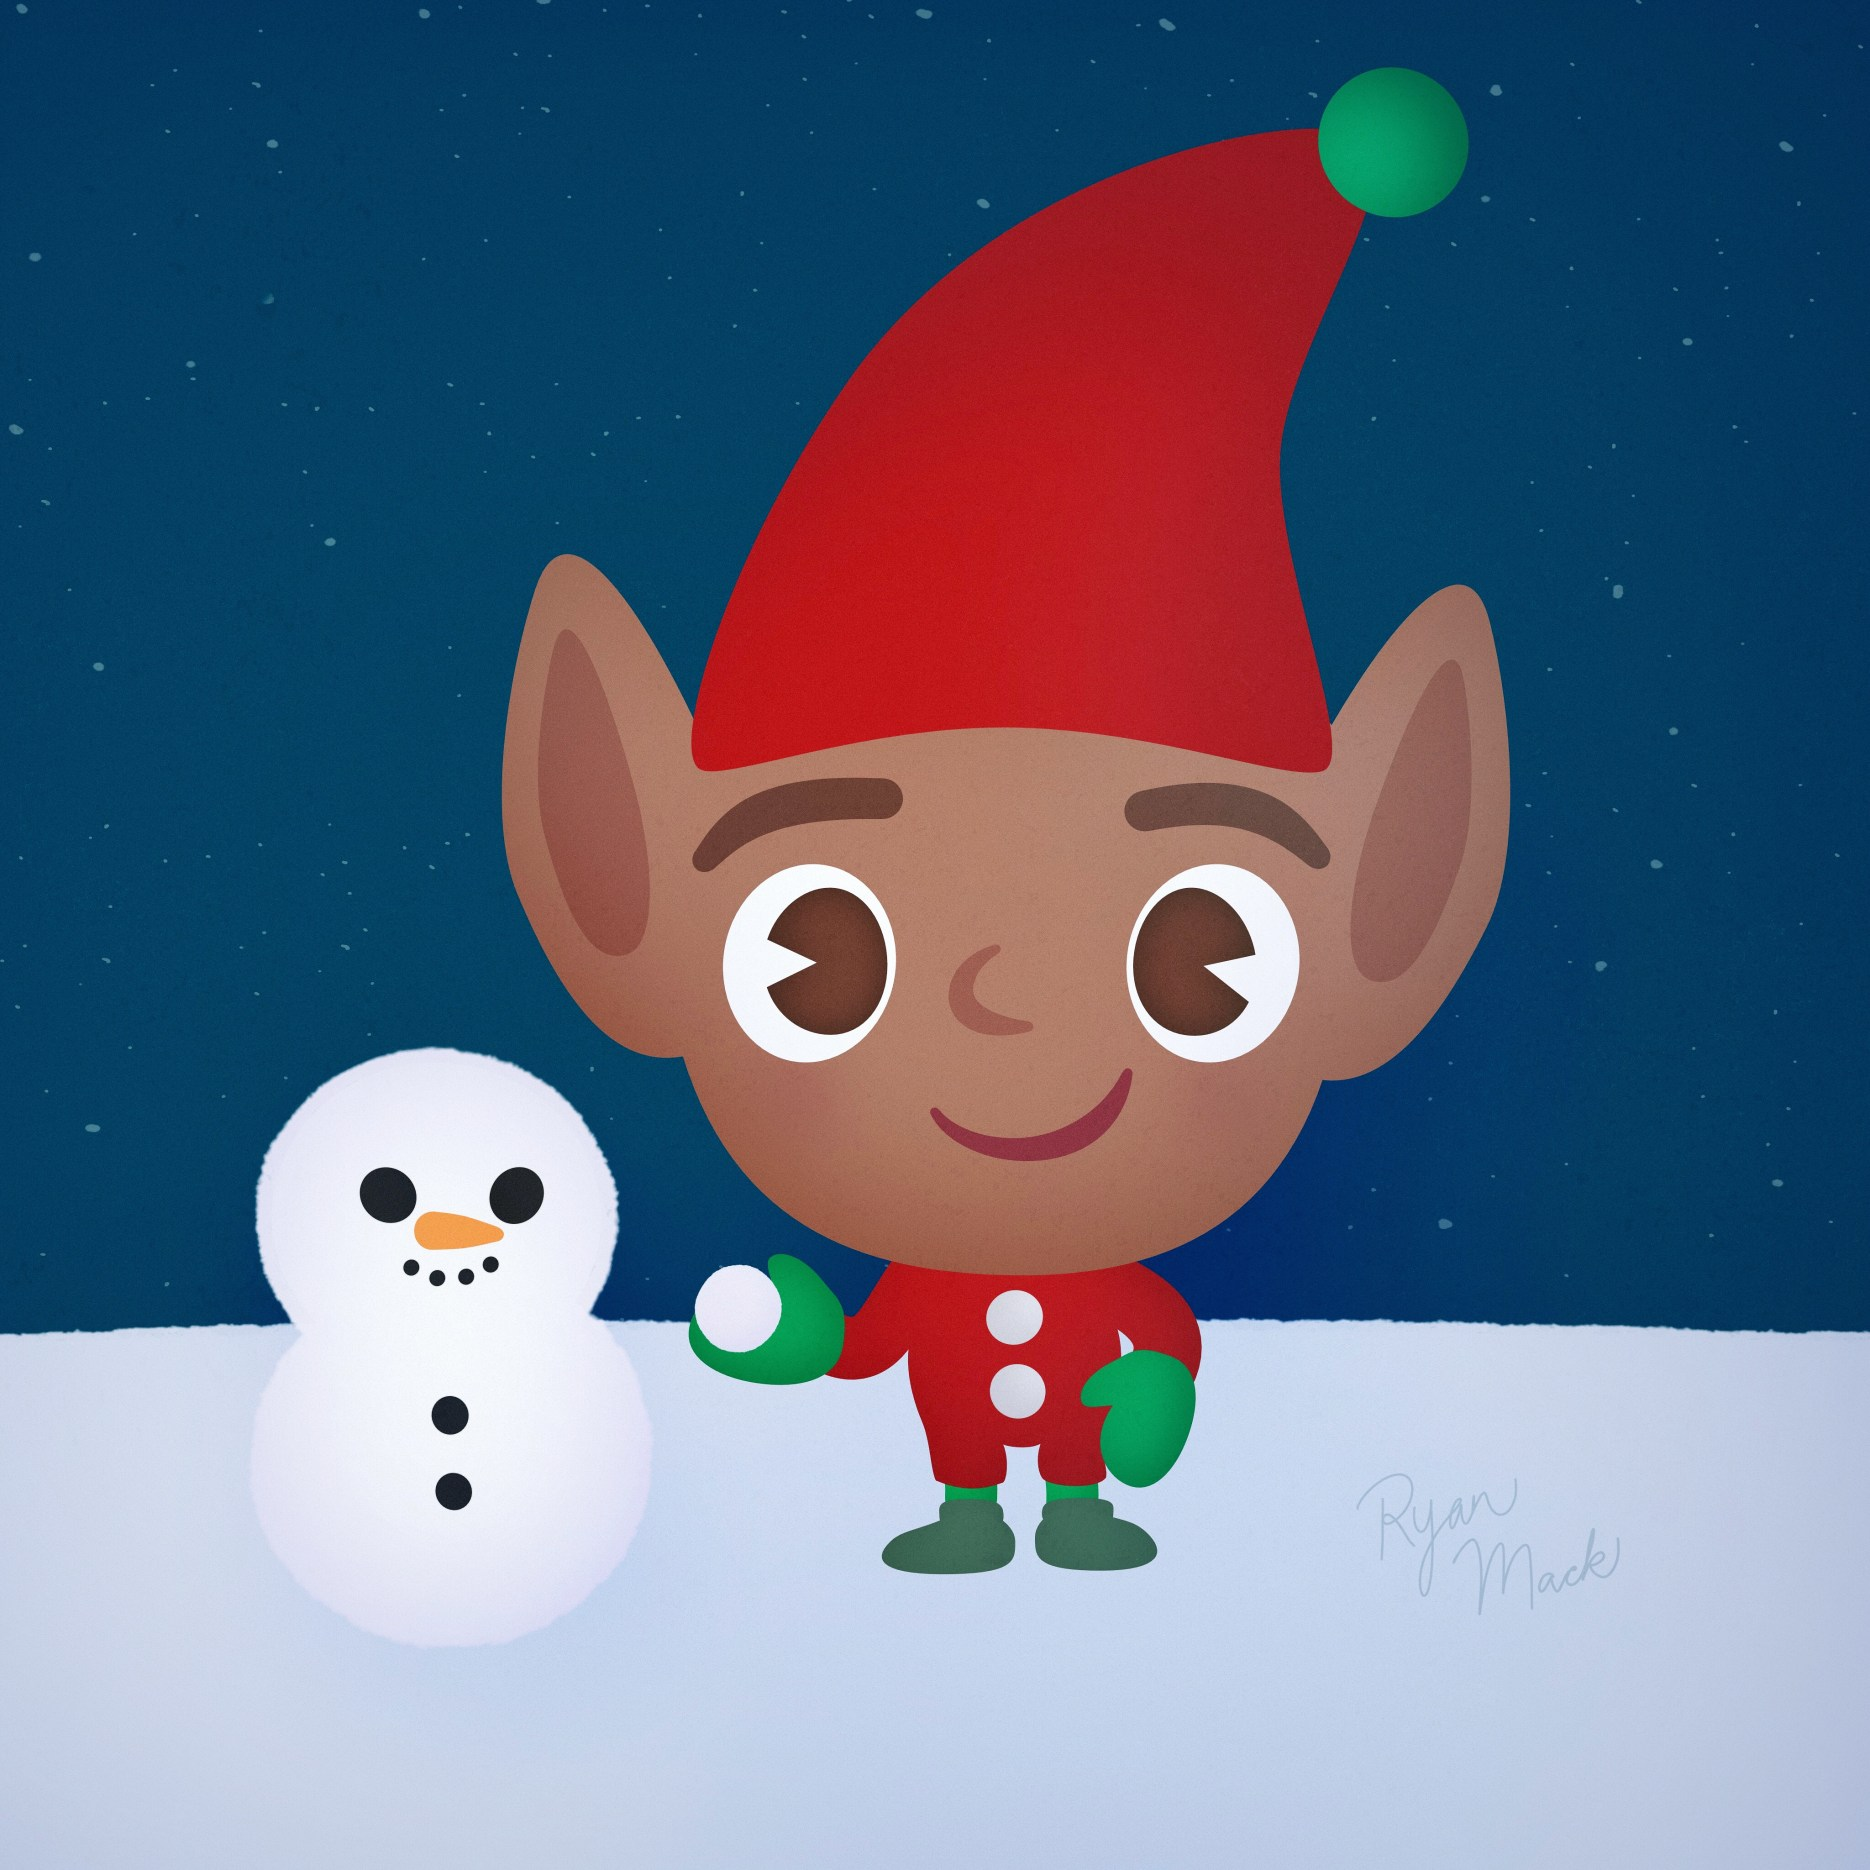 Adorable Elf Building a Snowman